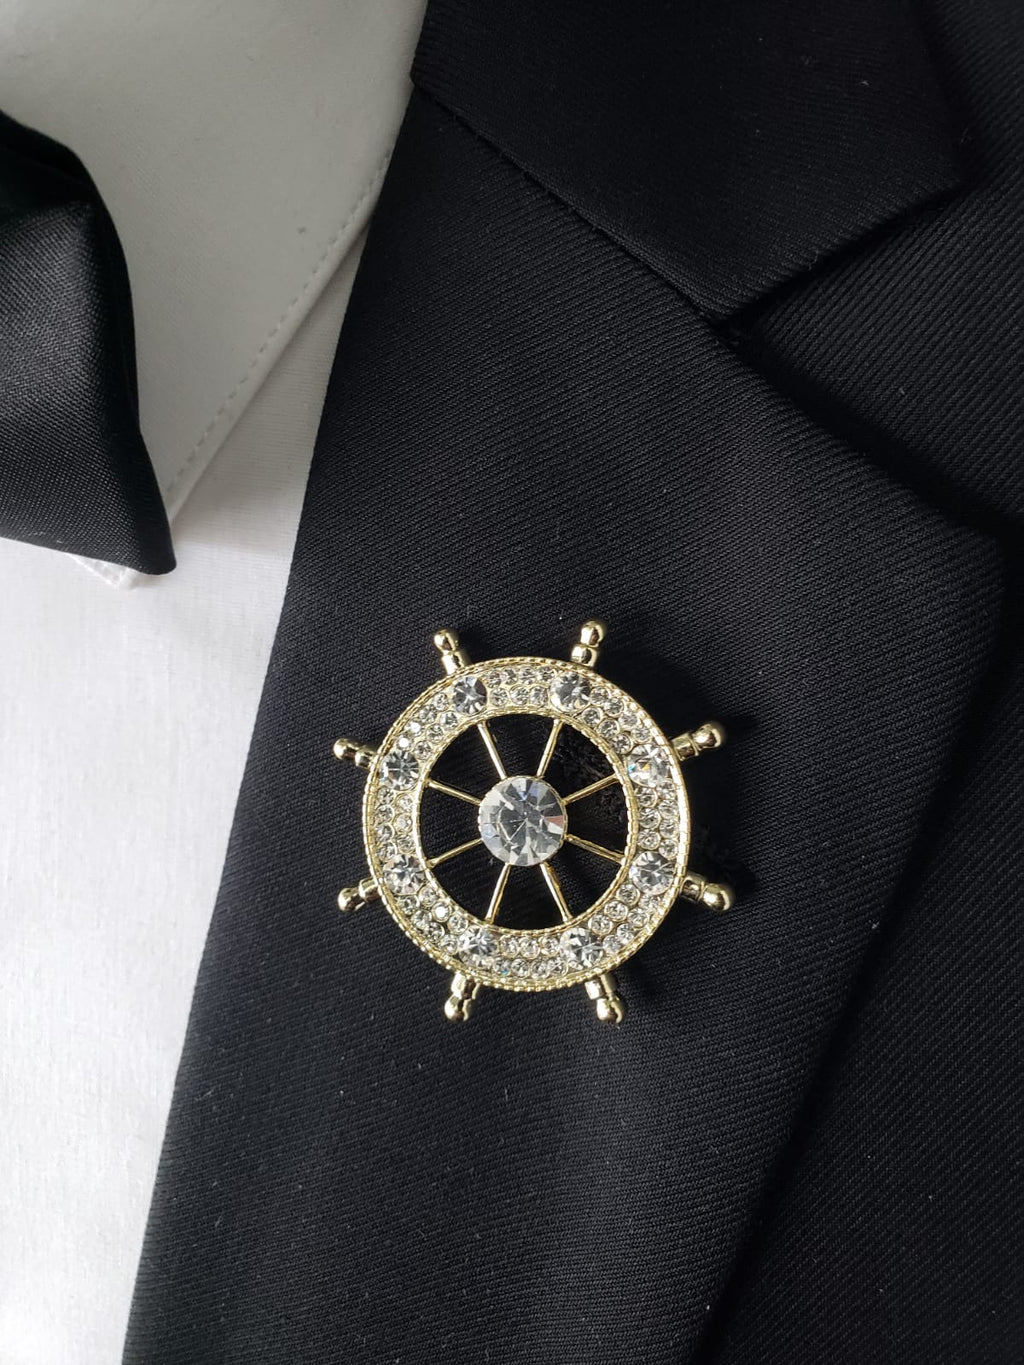 Gold Compass lapel pin